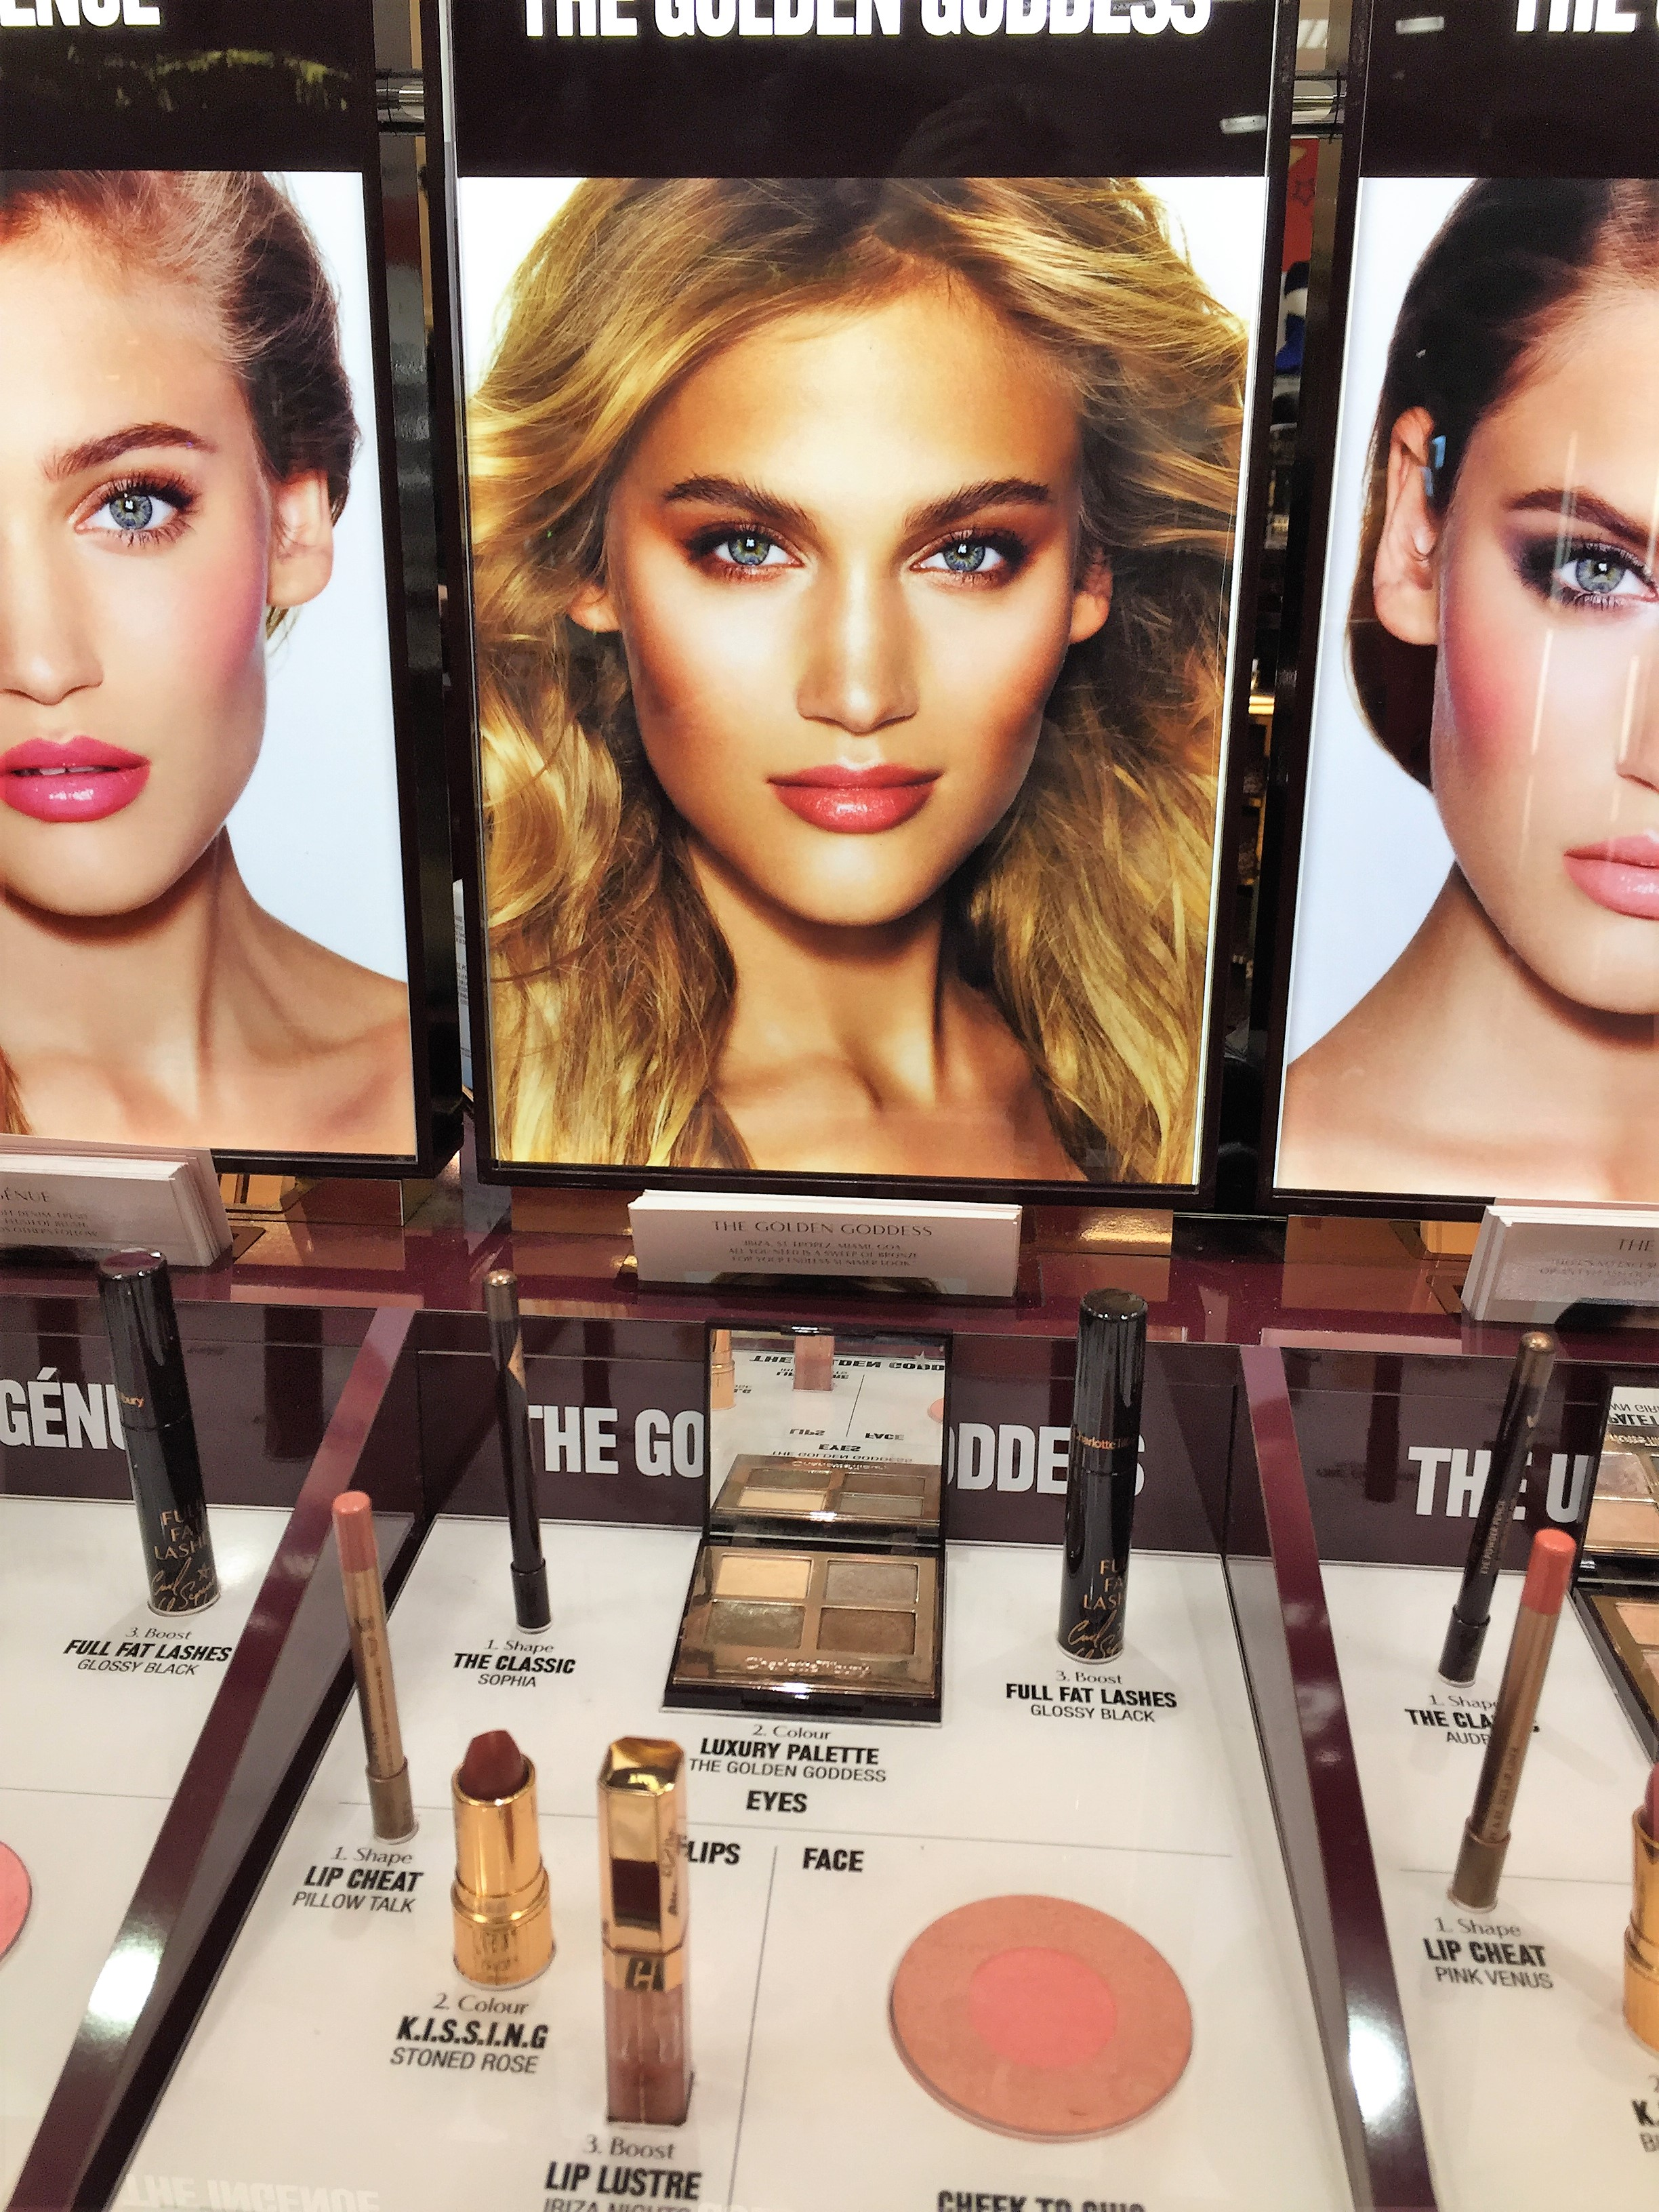 Shaz Saed -- Blonde Tea Party -- www.blonde-tea-party.com -- beauty and makeup tips -- charlotte tilbury--kingston bentalls -- magic foundation--golden goddess--glamerous makeup look--